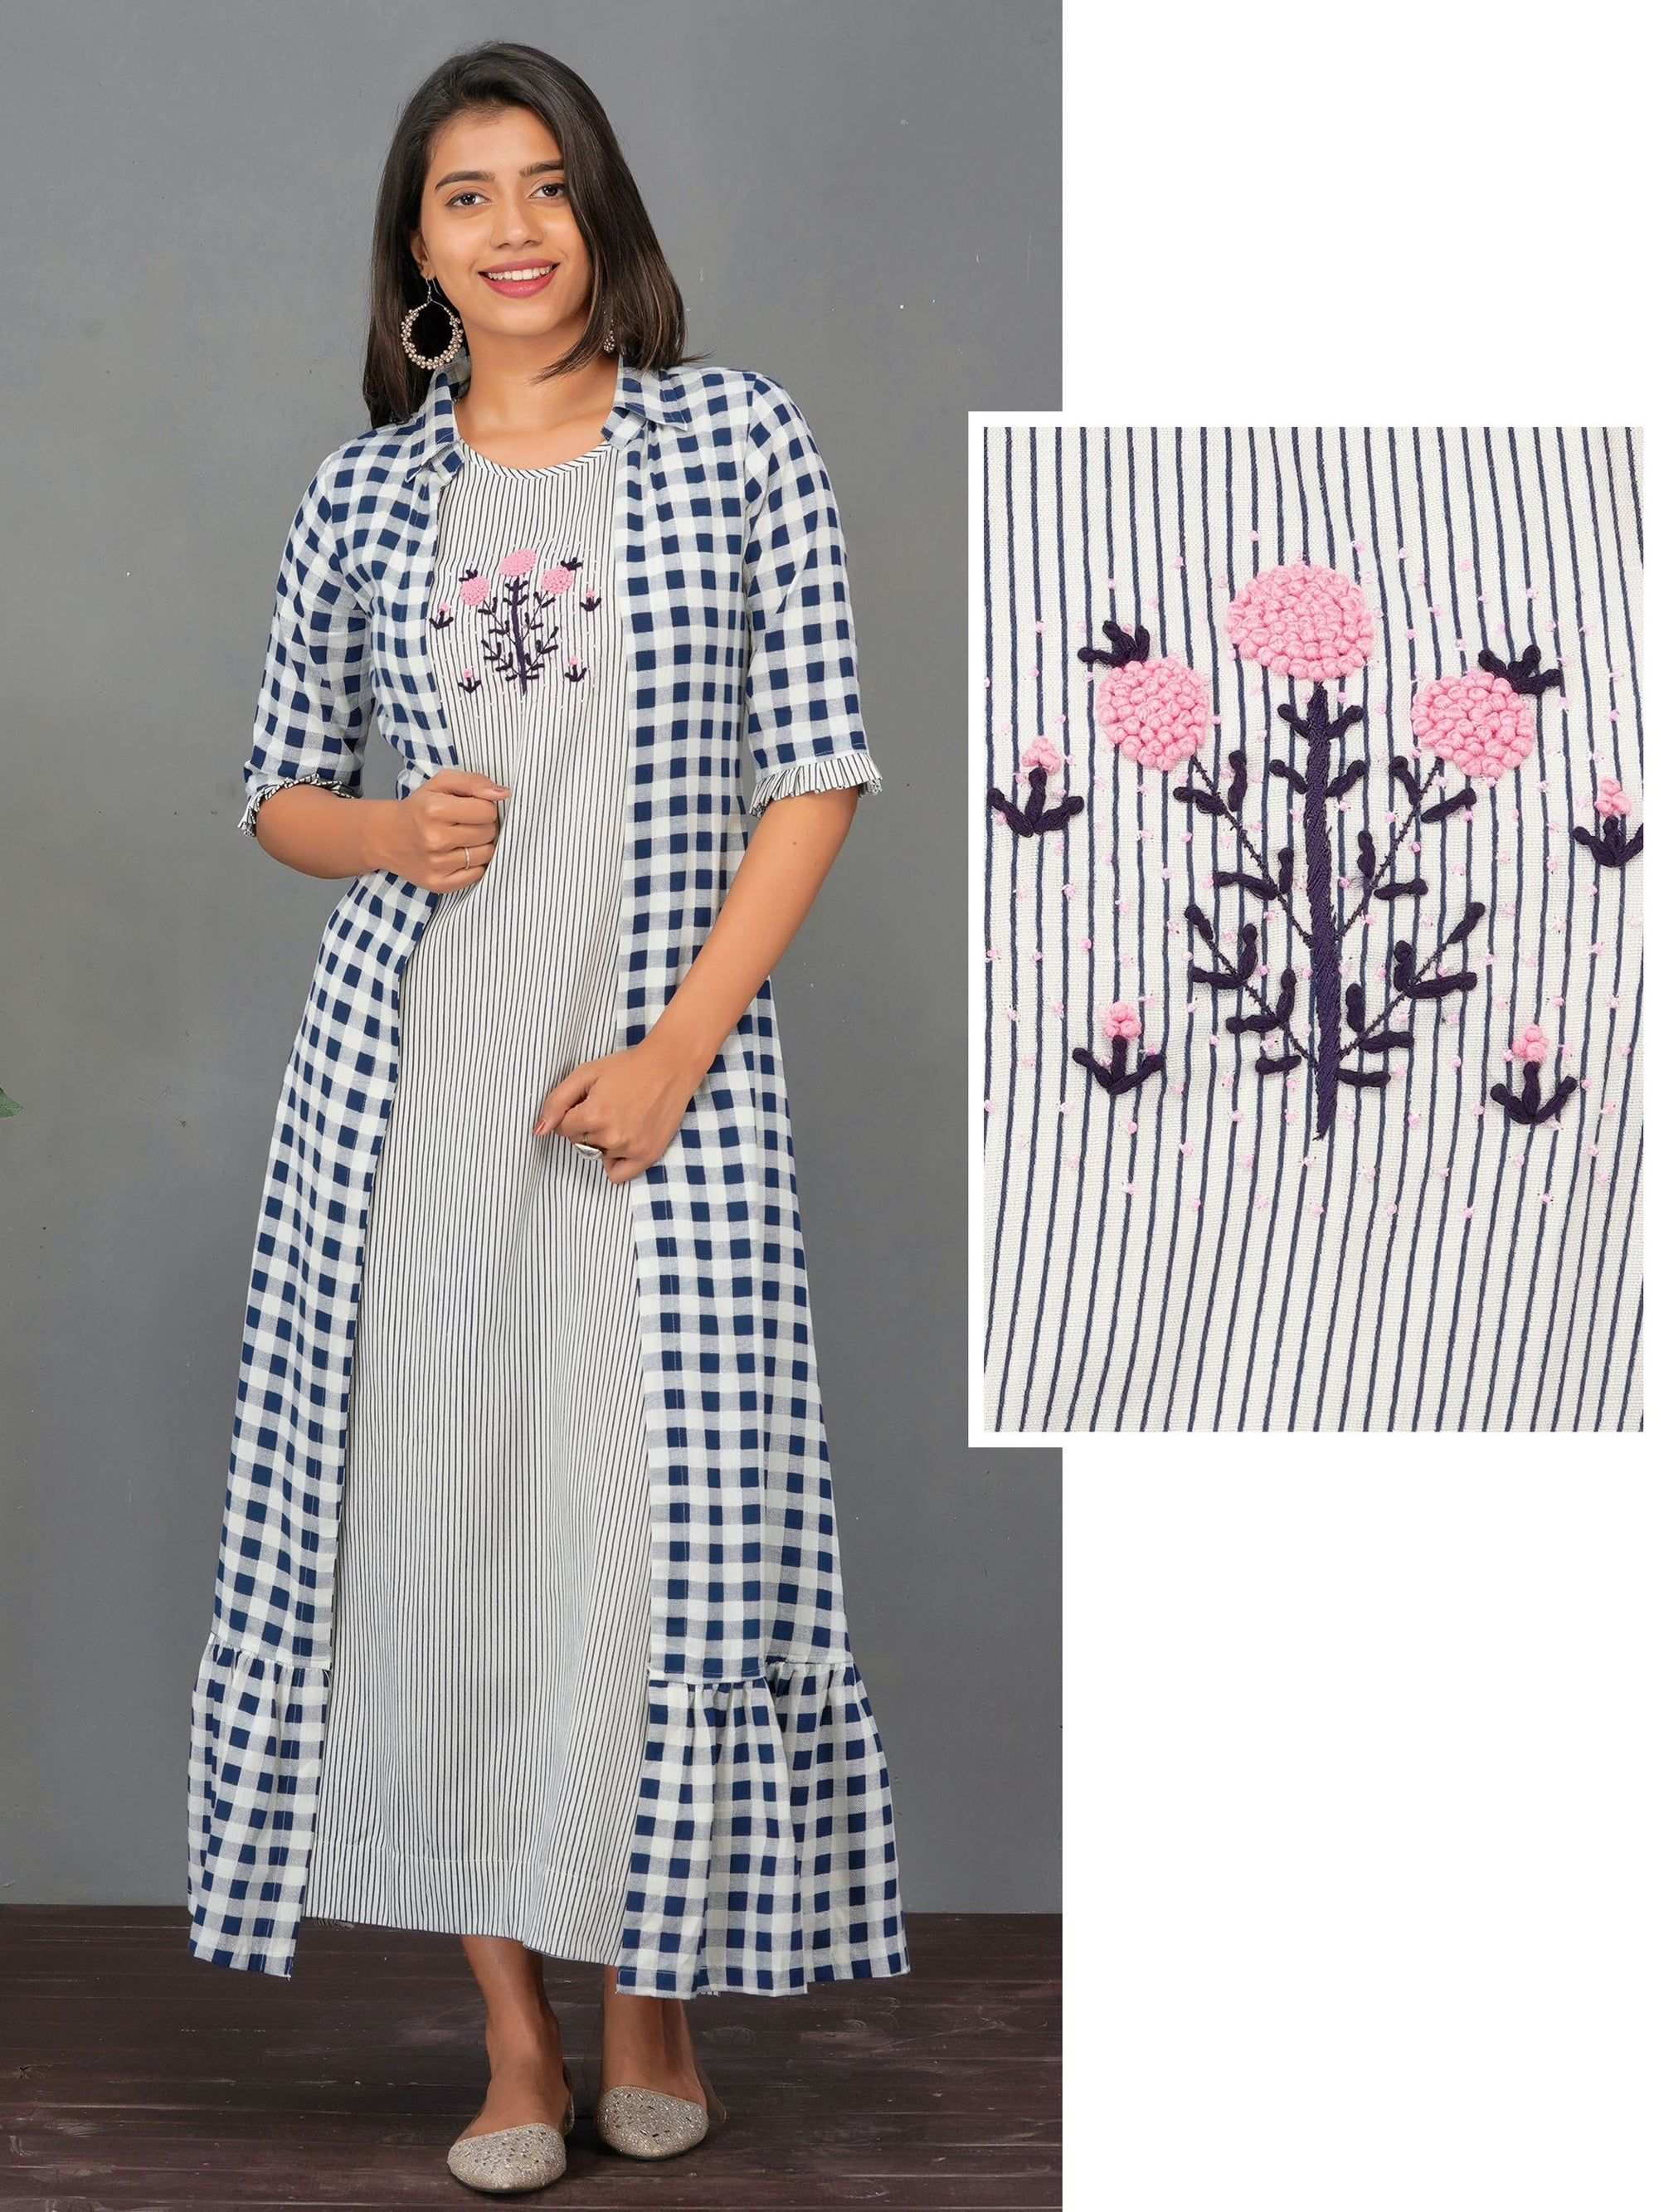 French Knot Embroidered A-Line Maxi with Checkered Jacket – Indigo